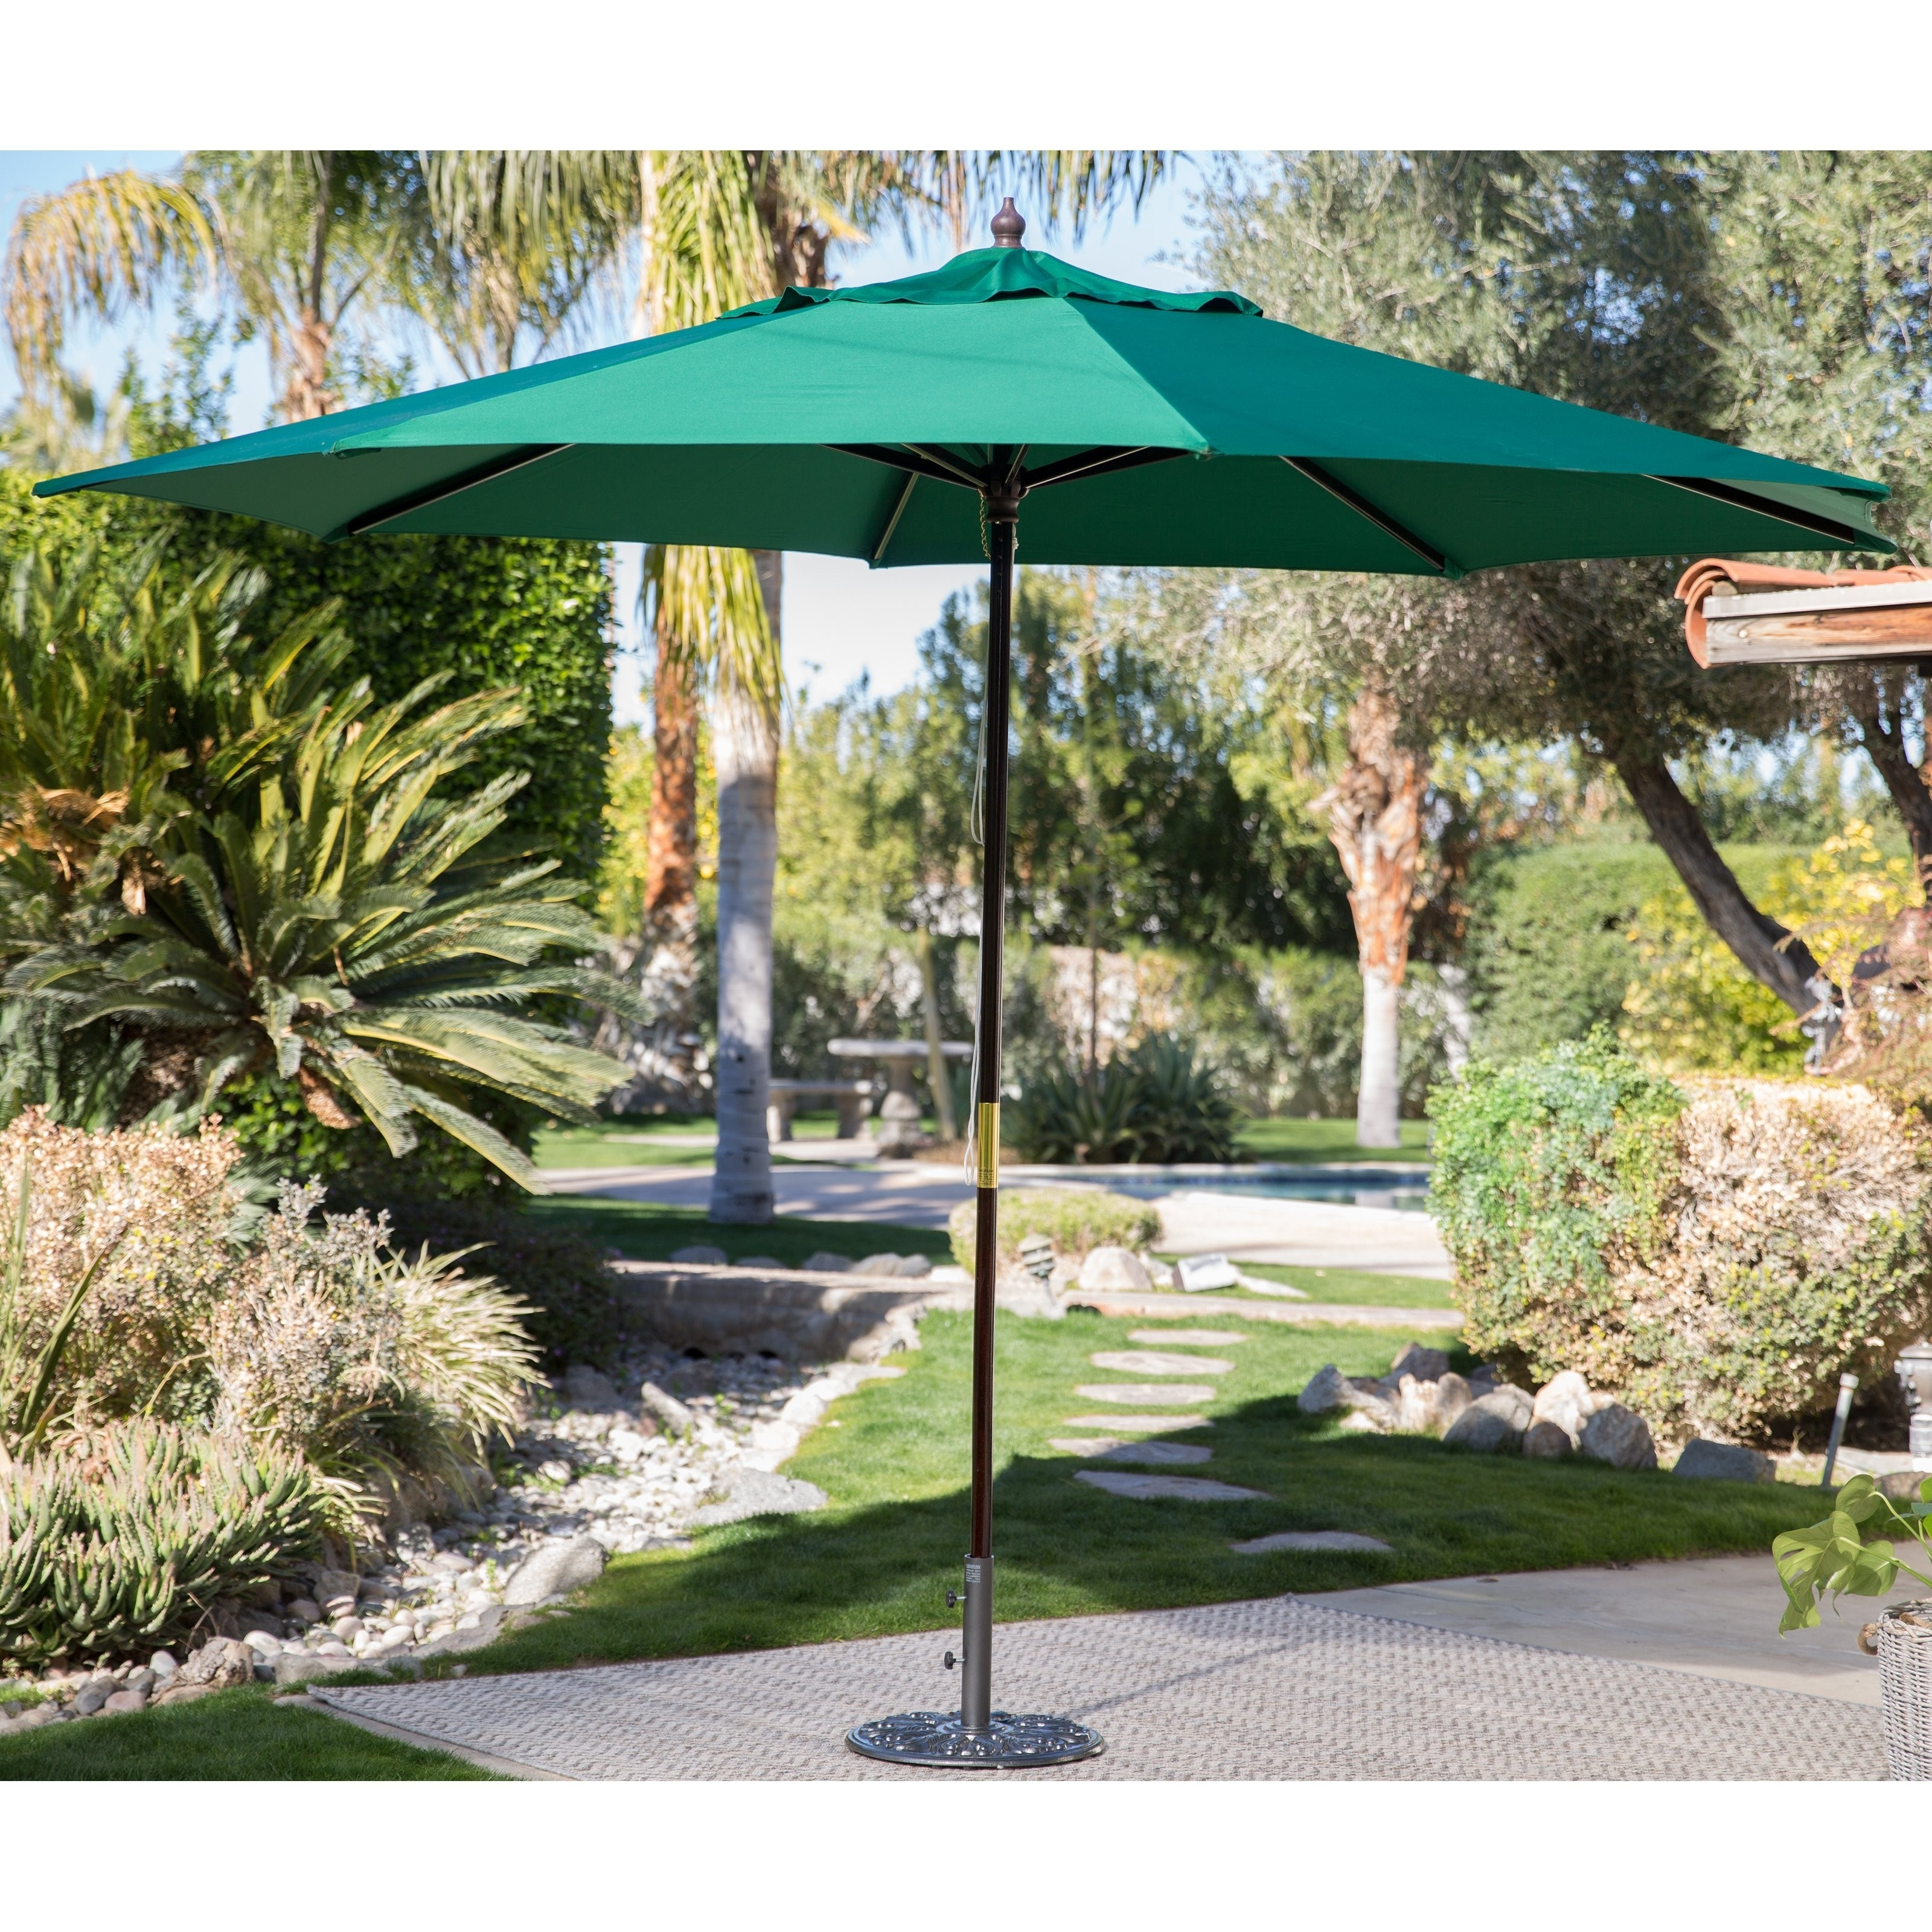 Popular Green Patio Umbrellas Intended For California Umbrella 6 Square Marenti Wood Frame Market Umbrellal (View 19 of 20)